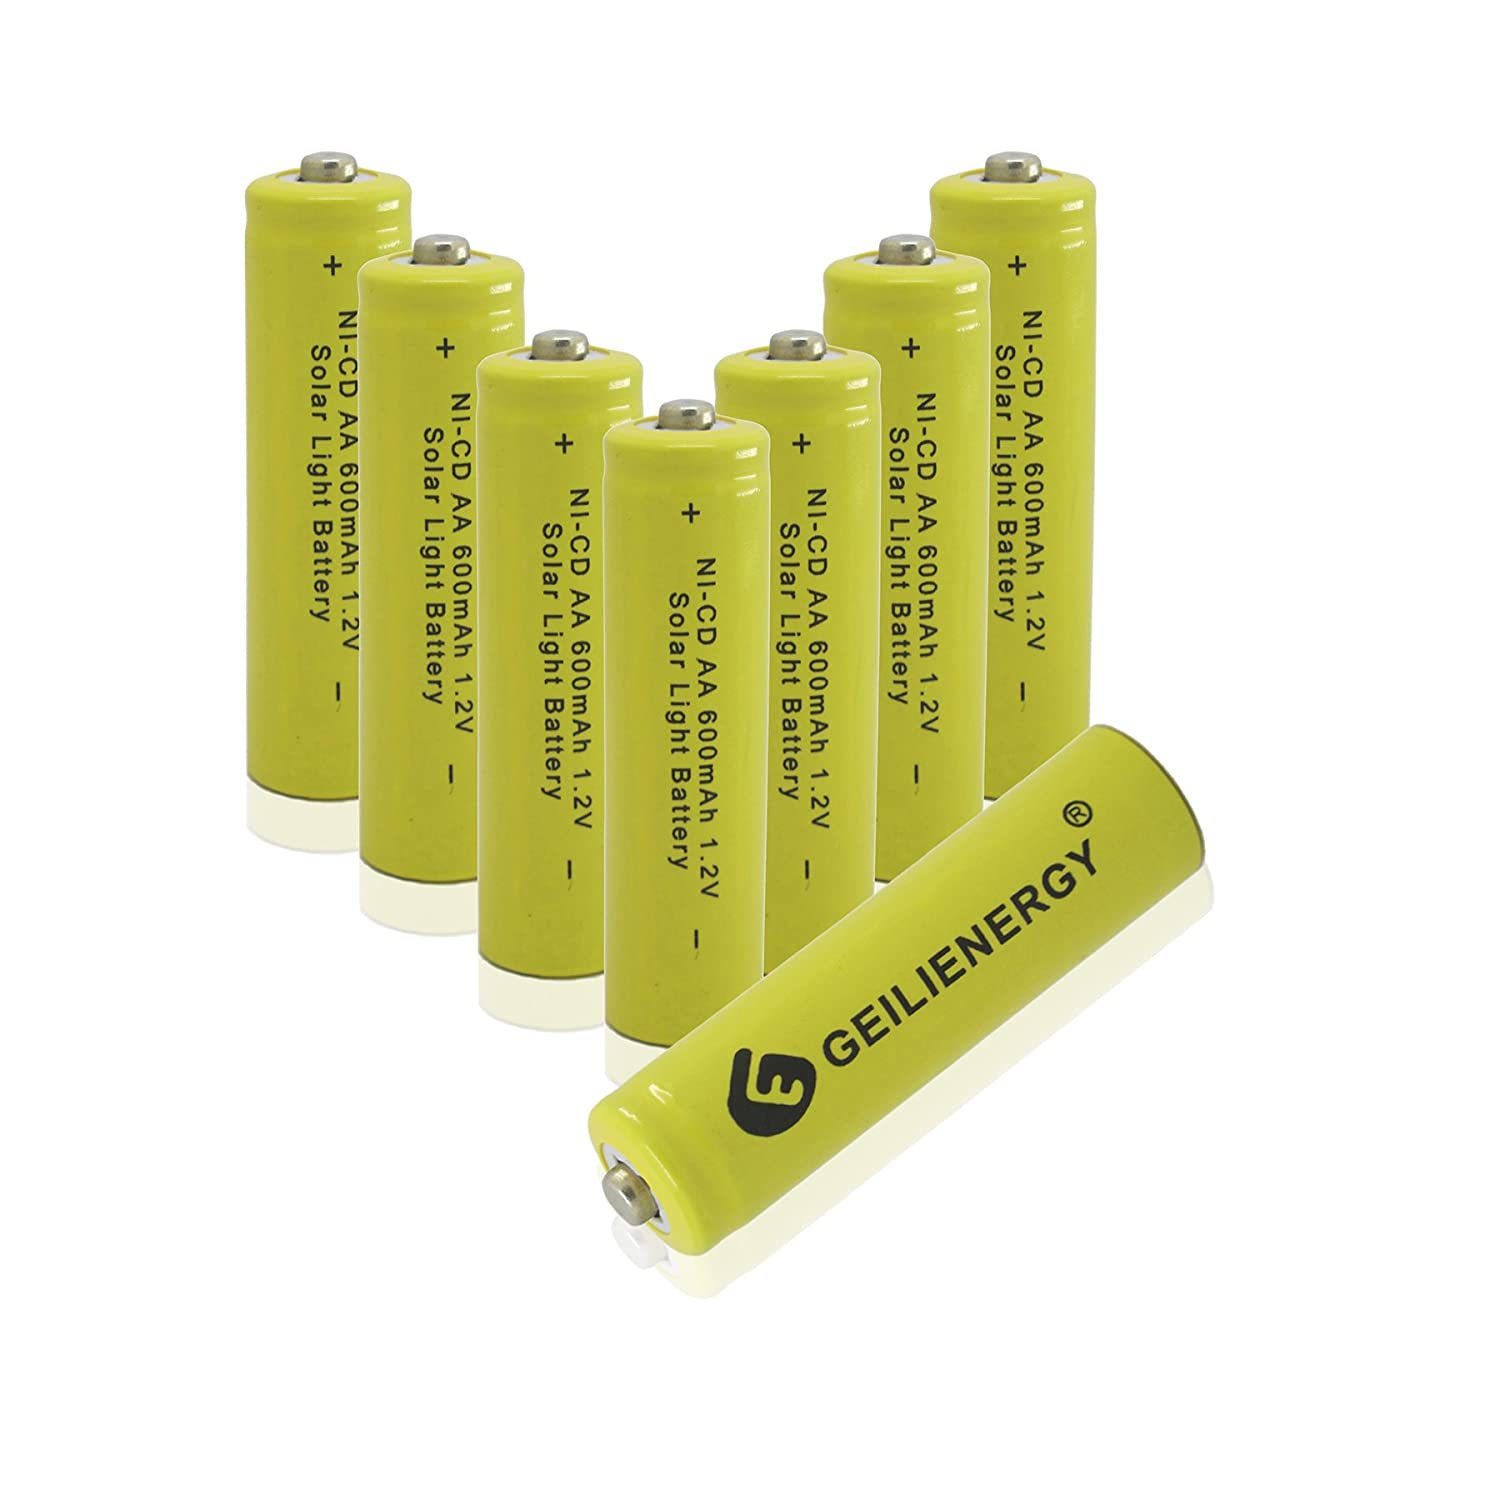 ion pack solar sealed acid light lead battery replacement product china lithiun iypmljxhqnhg batteries